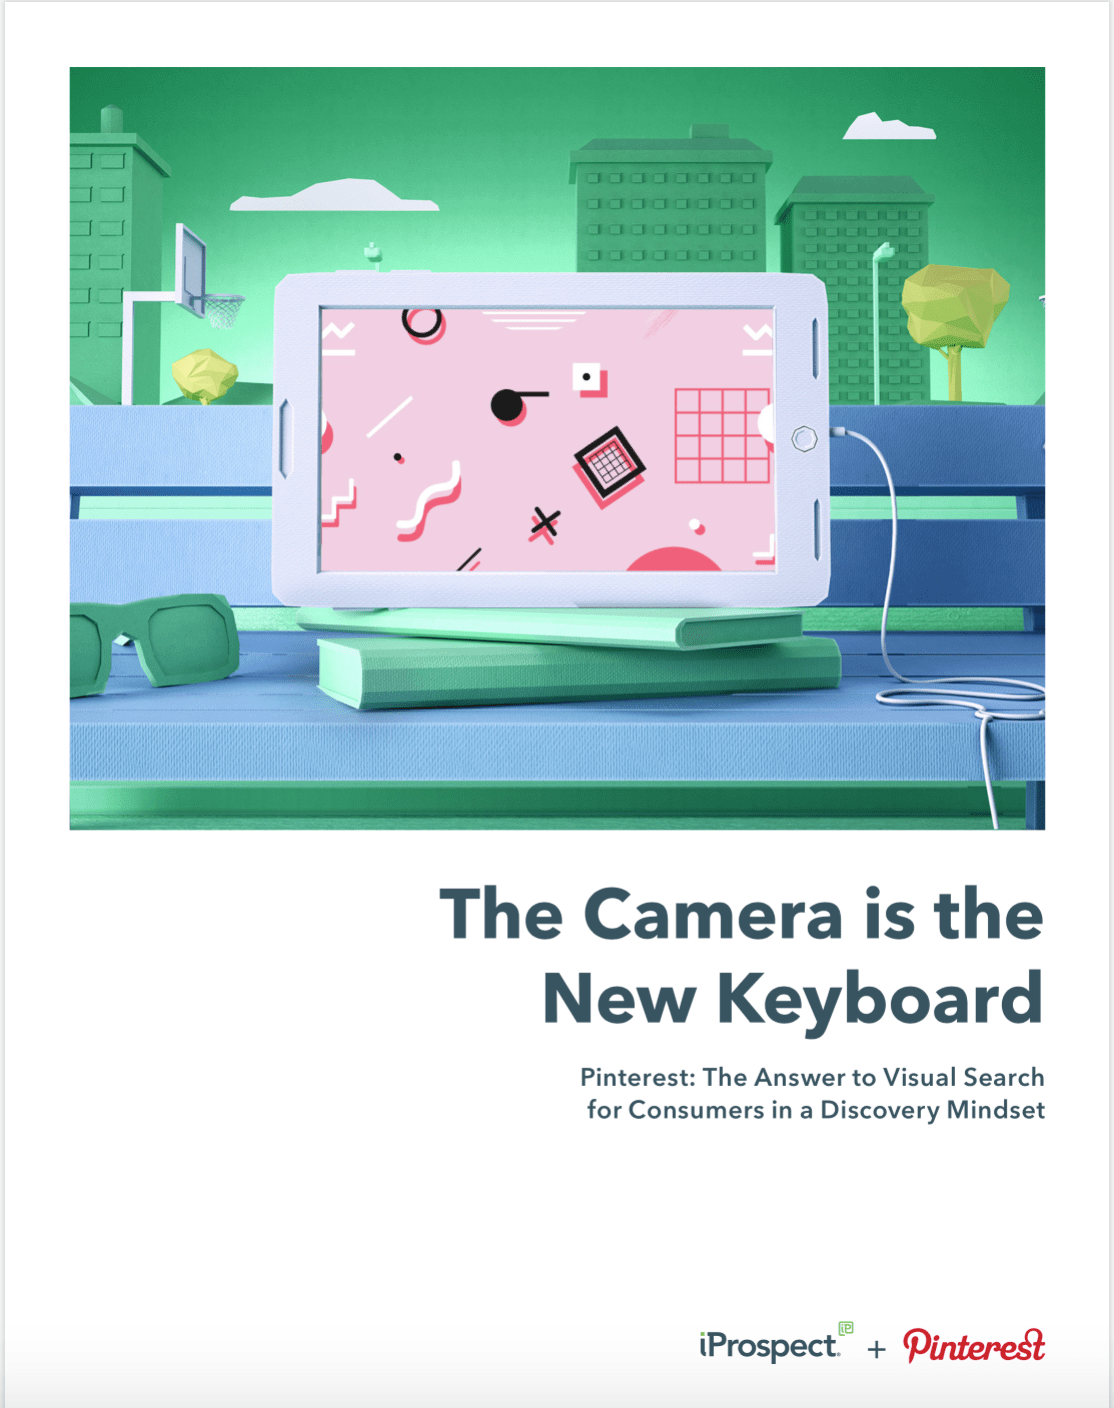 The Camera is the New Keyboard - iProspect & Pinterest Thought Leadership